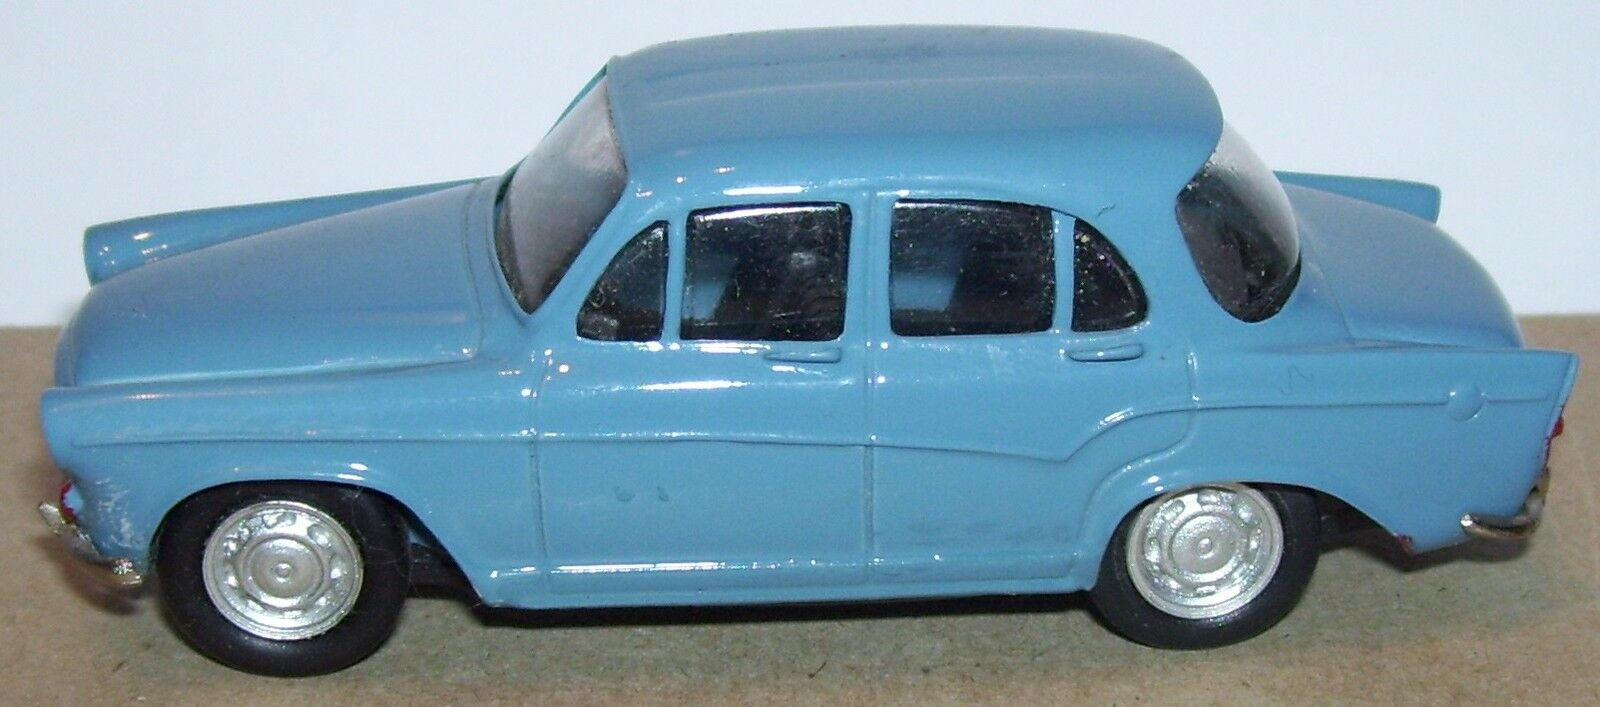 DUVI KIT RESIN RESIN RESIN MOUNTED MADE IN FRANCE SIMCA ARONDE P60 blueE 1 43 BOX NO. fd9736